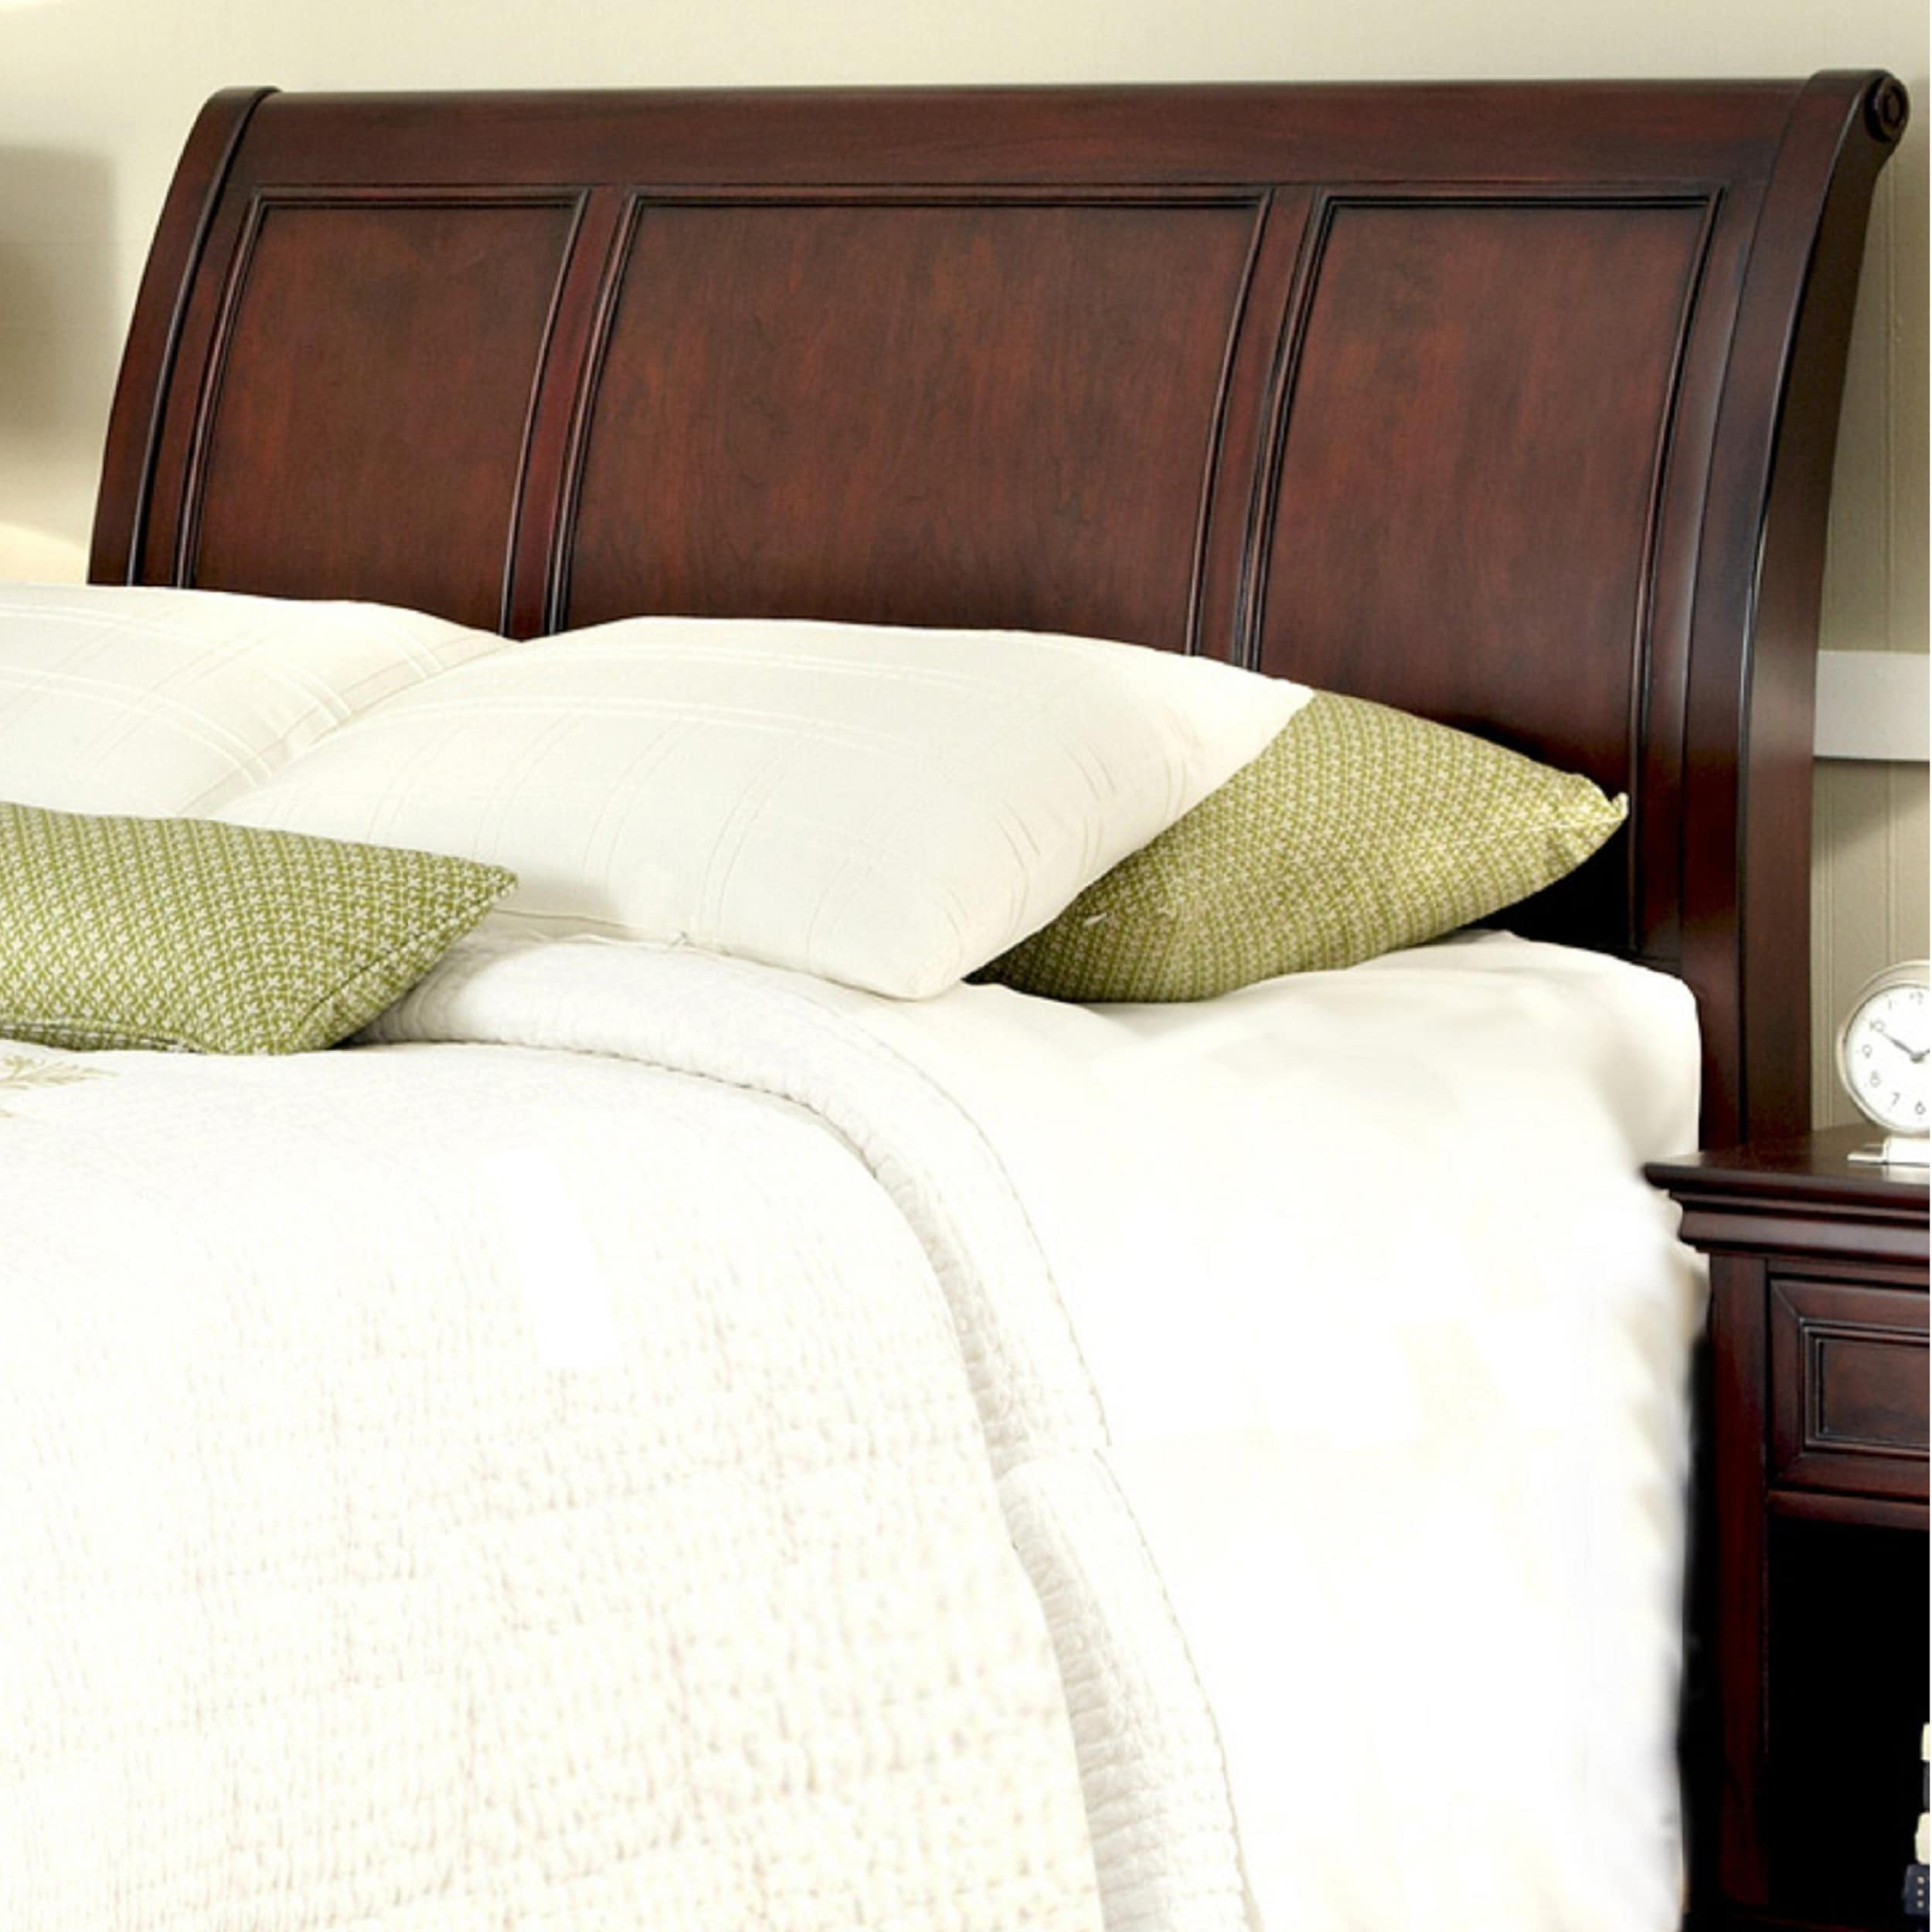 Sleigh Bed Headboard Home Styles Cherry Finished Mahogany King California King Sleigh Headboard